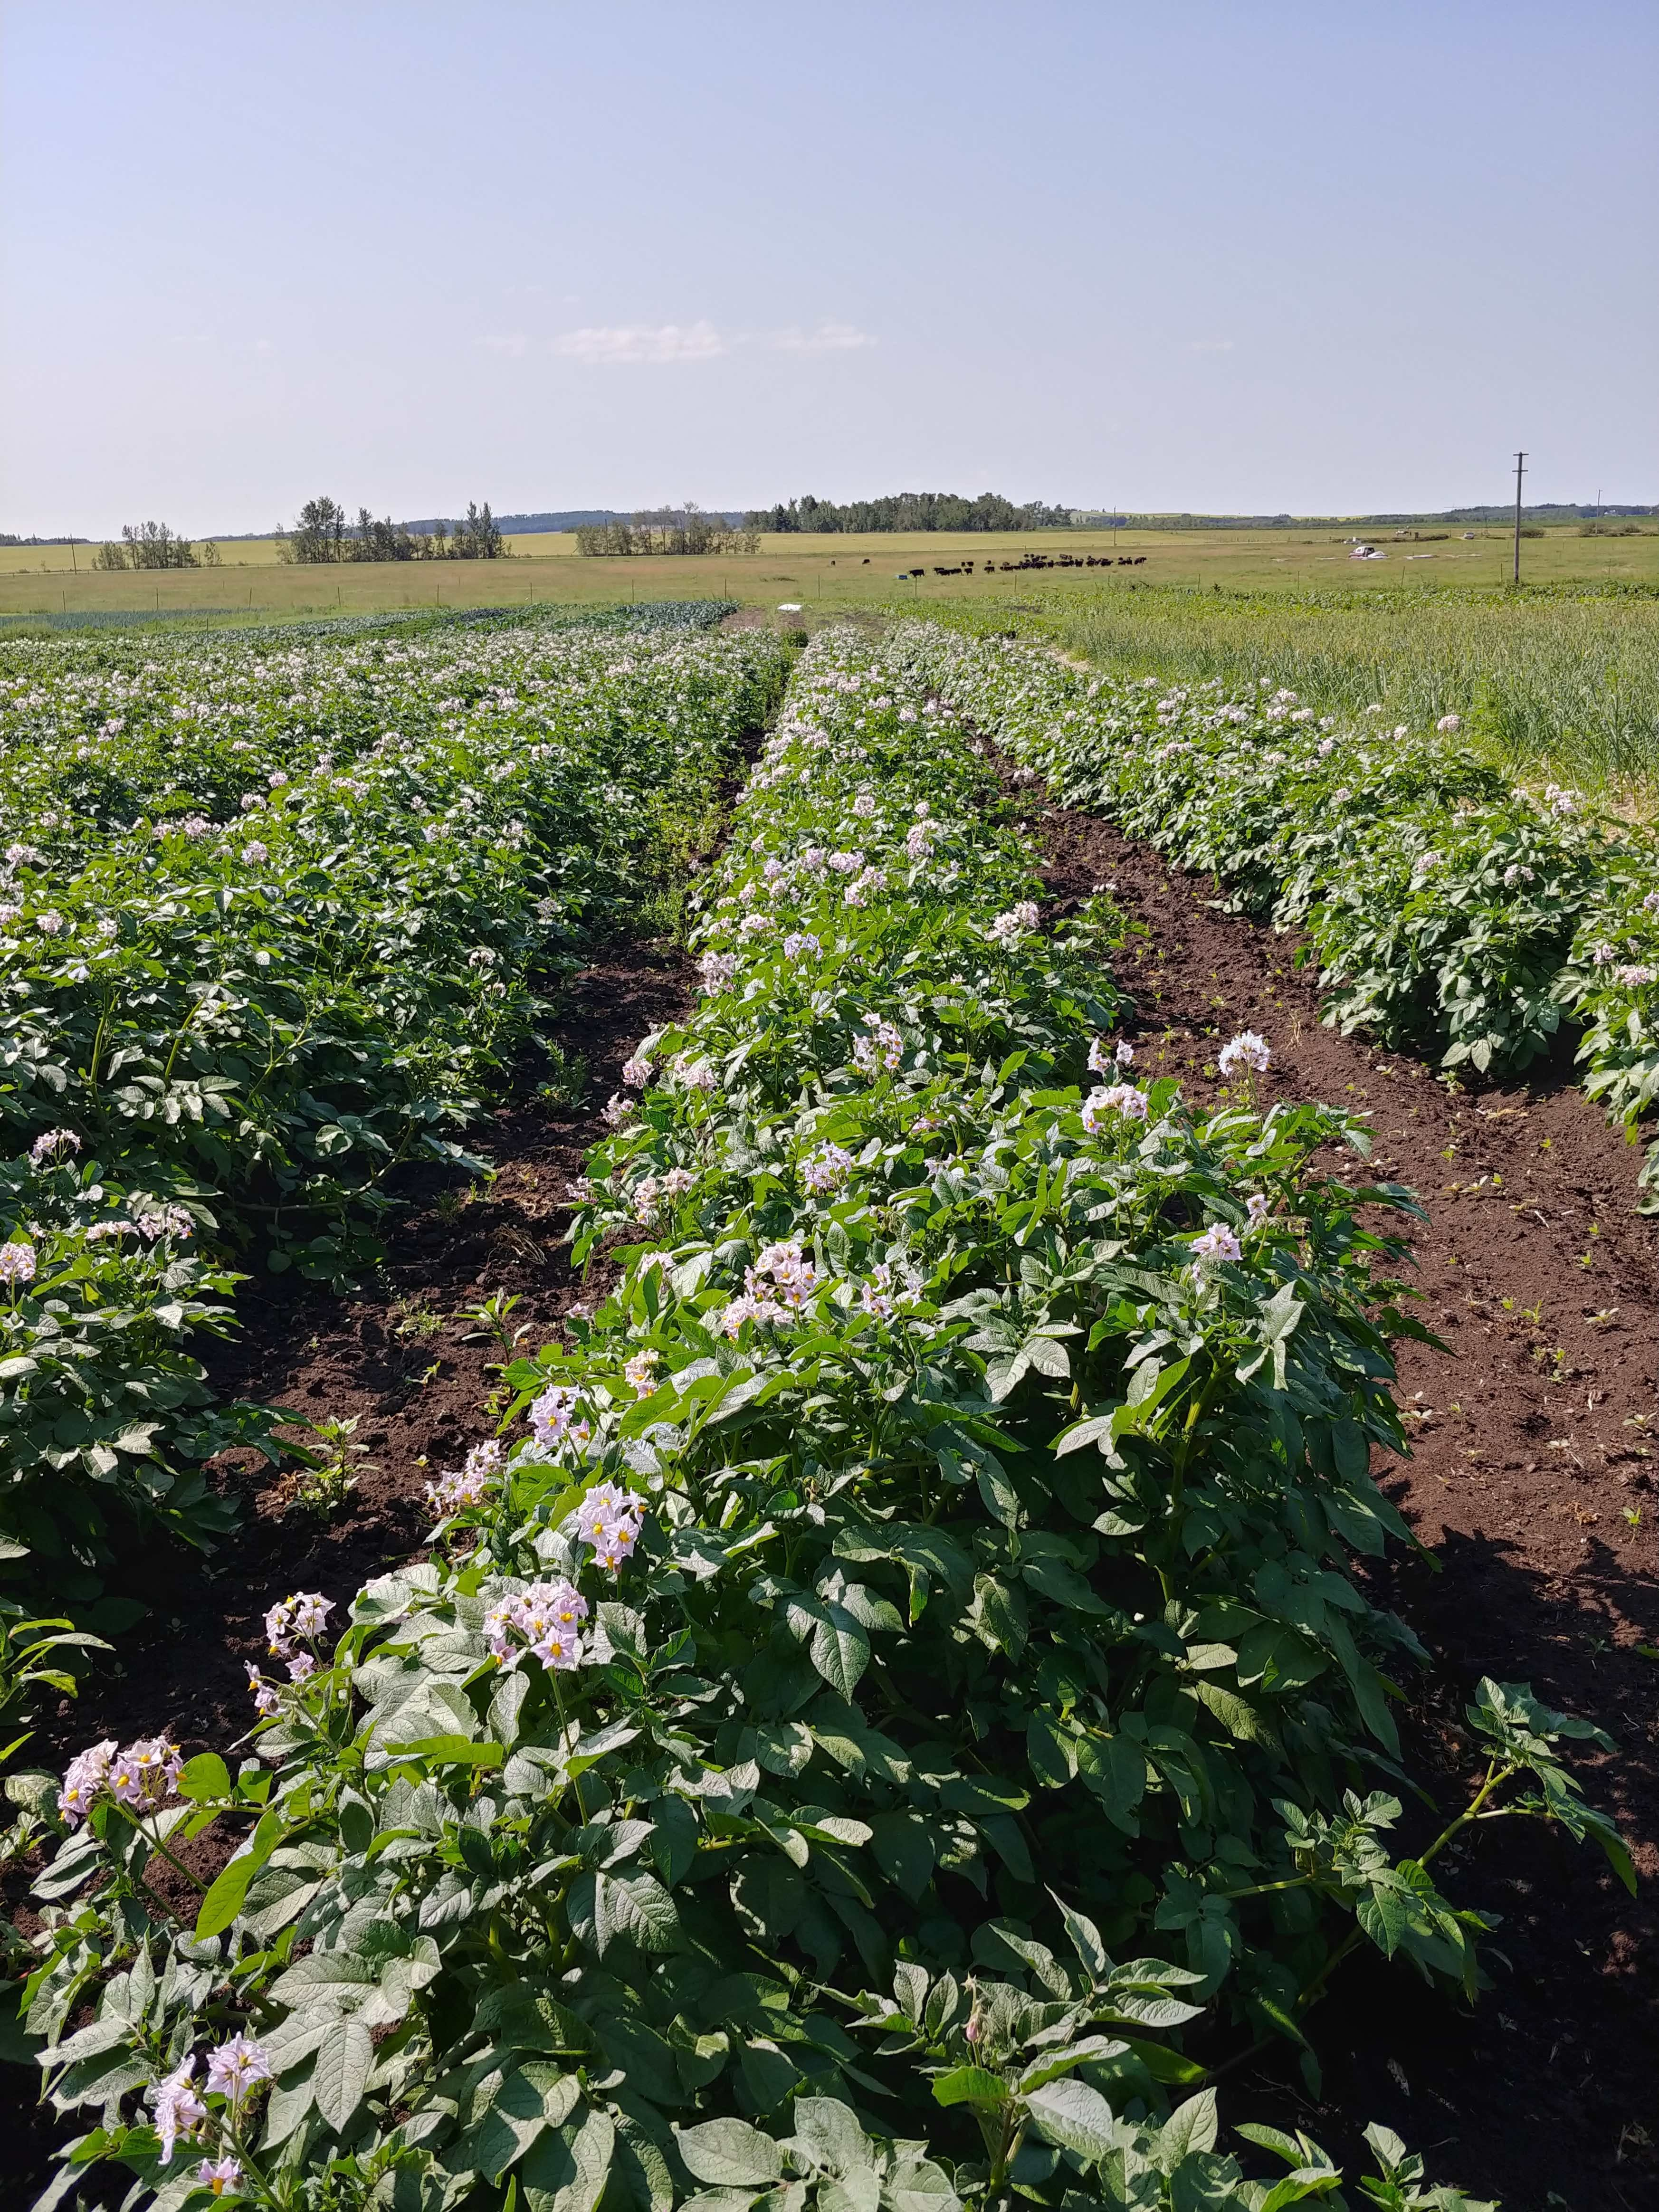 Farm Happenings for August 6, 2019 - Potatoes and Beef